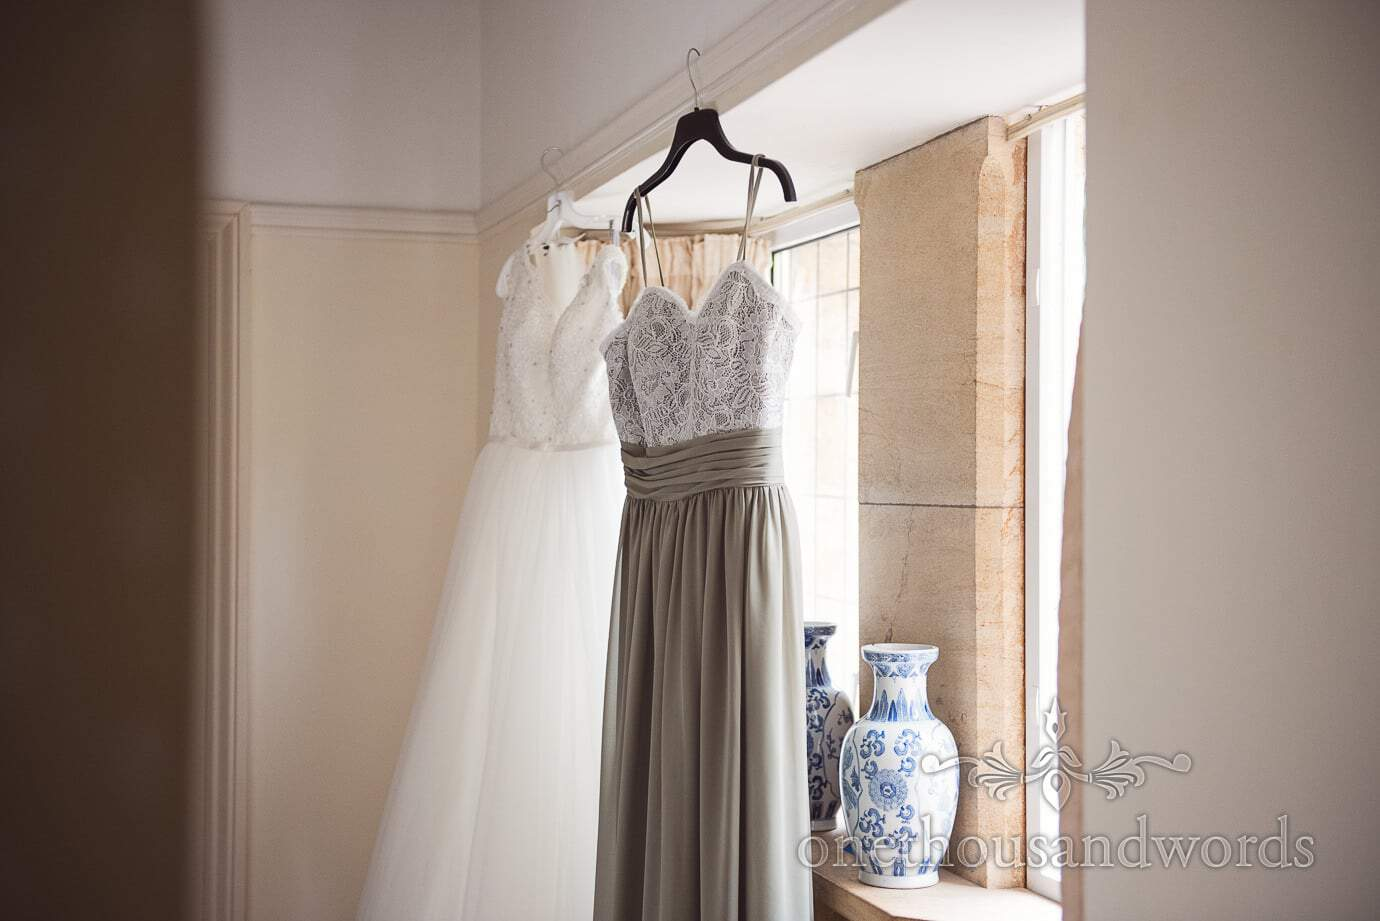 Dusty green bridesmaids dress hangs in window with white wedding dress